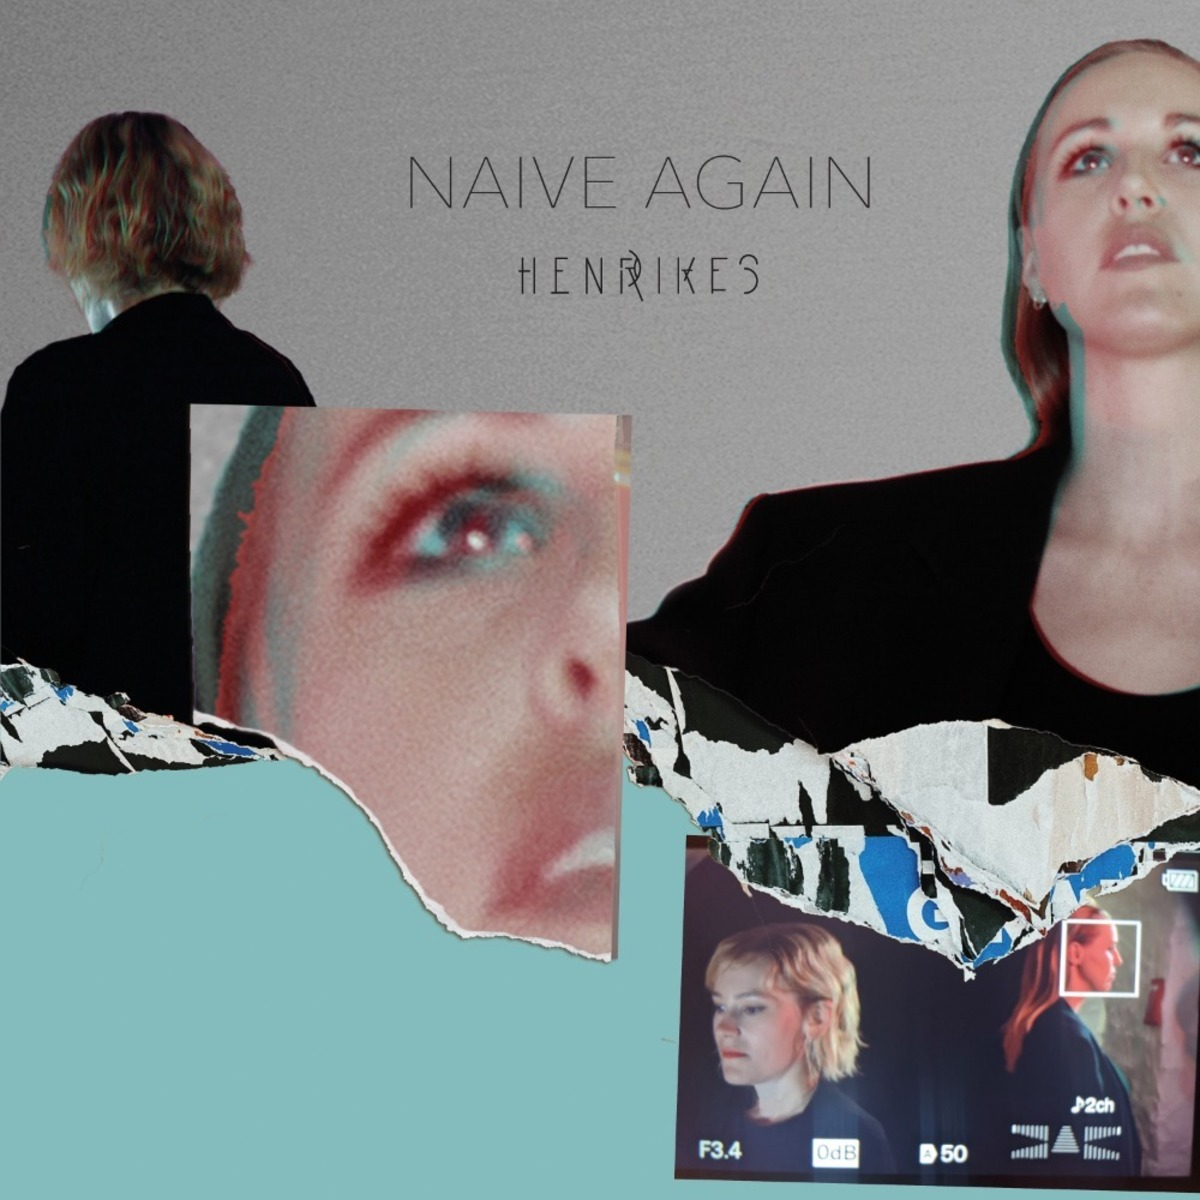 Articlehome henrikes naive again album artwork